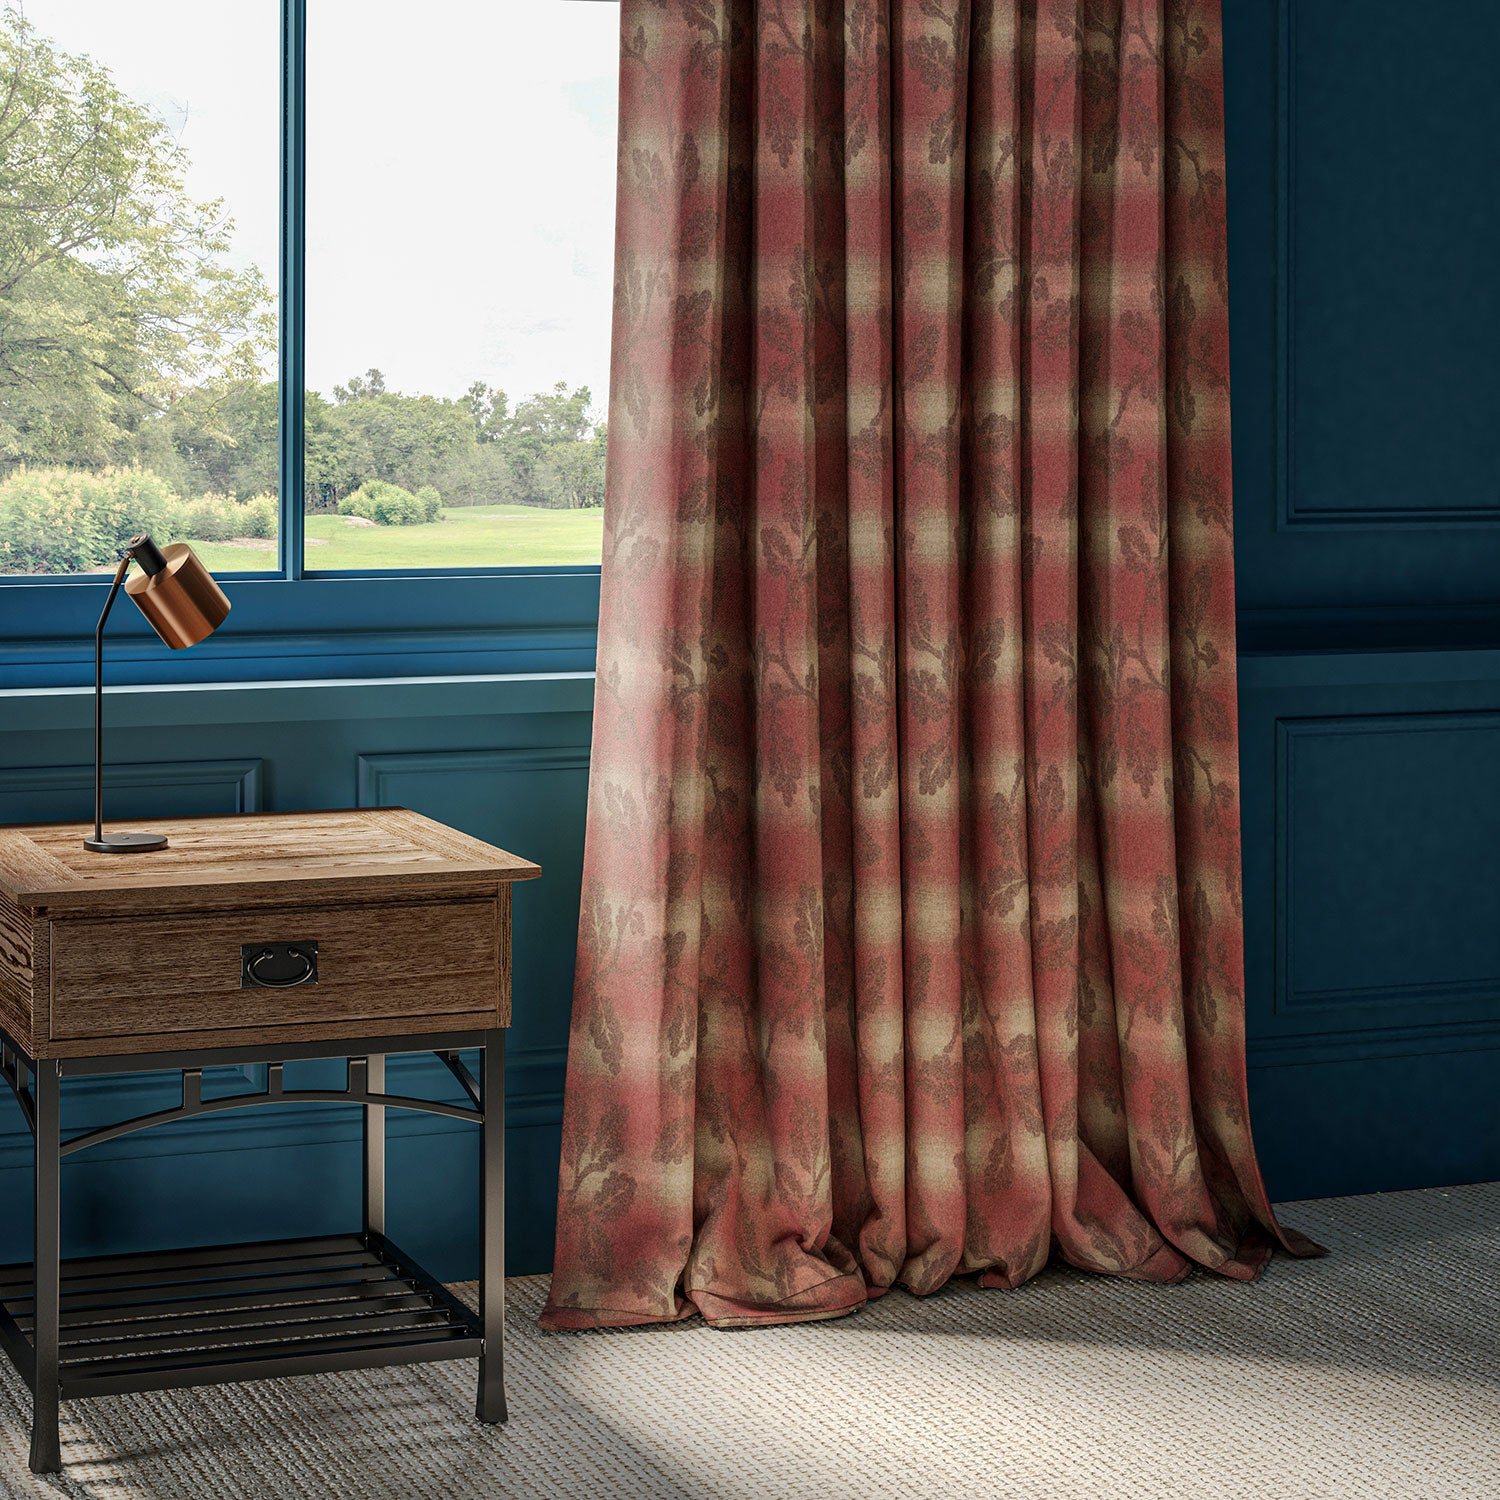 Curtains in a red wool with neutral check and brown Holly leaf design